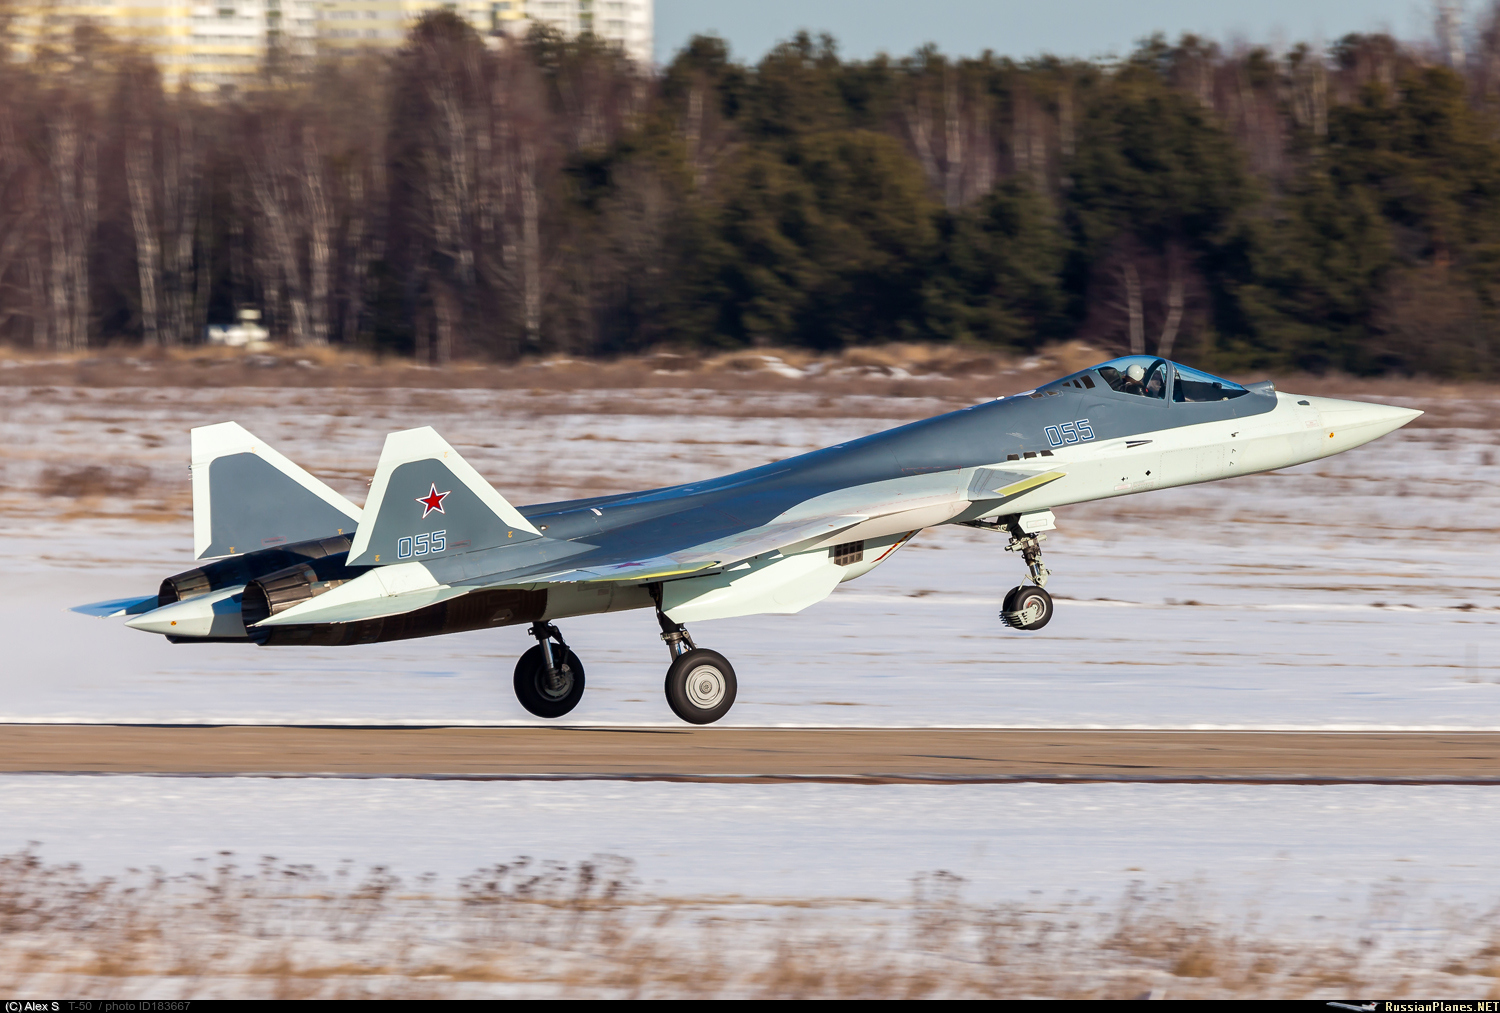 http://russianplanes.net/images/to184000/183667.jpg